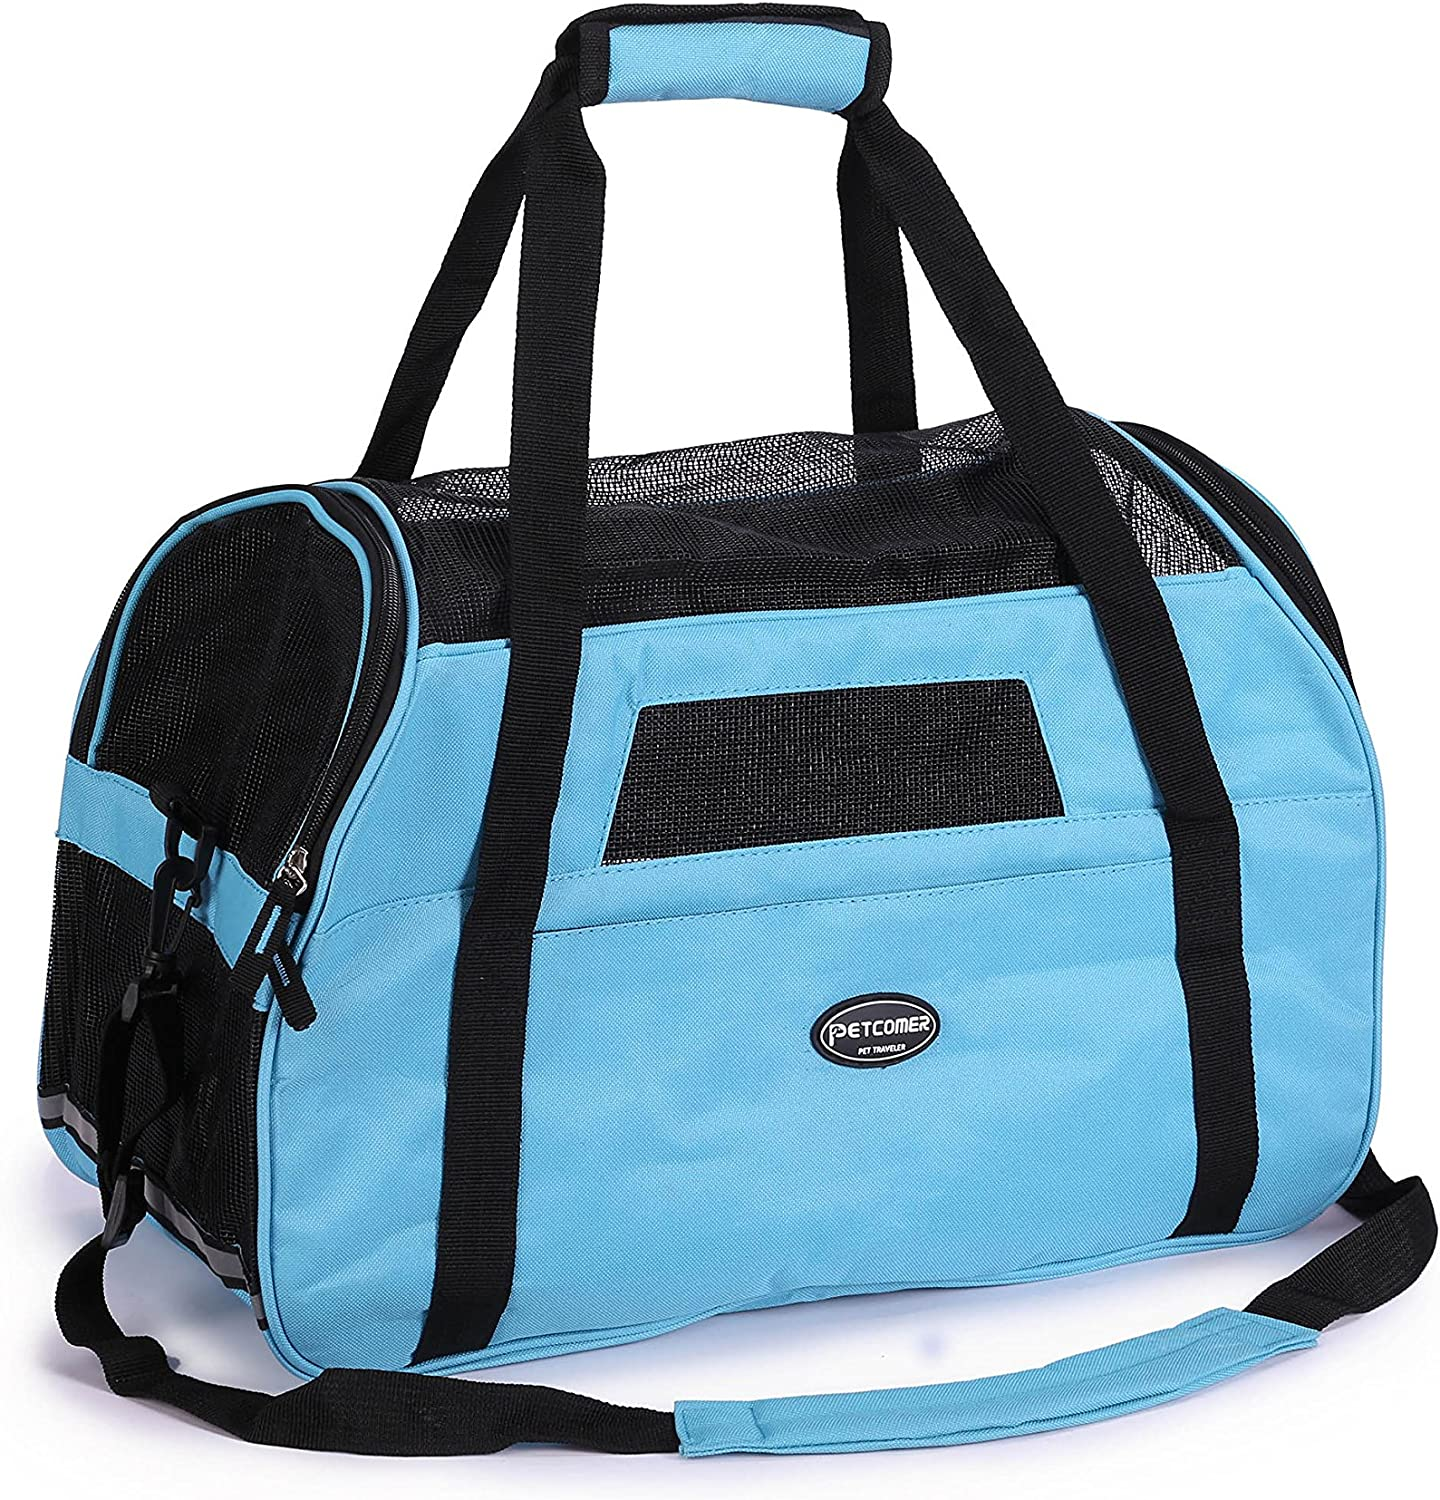 7c1b113404c3 Carrier Pet for Comfort Mat with Bag Sided Soft Tote Travel Approved ...